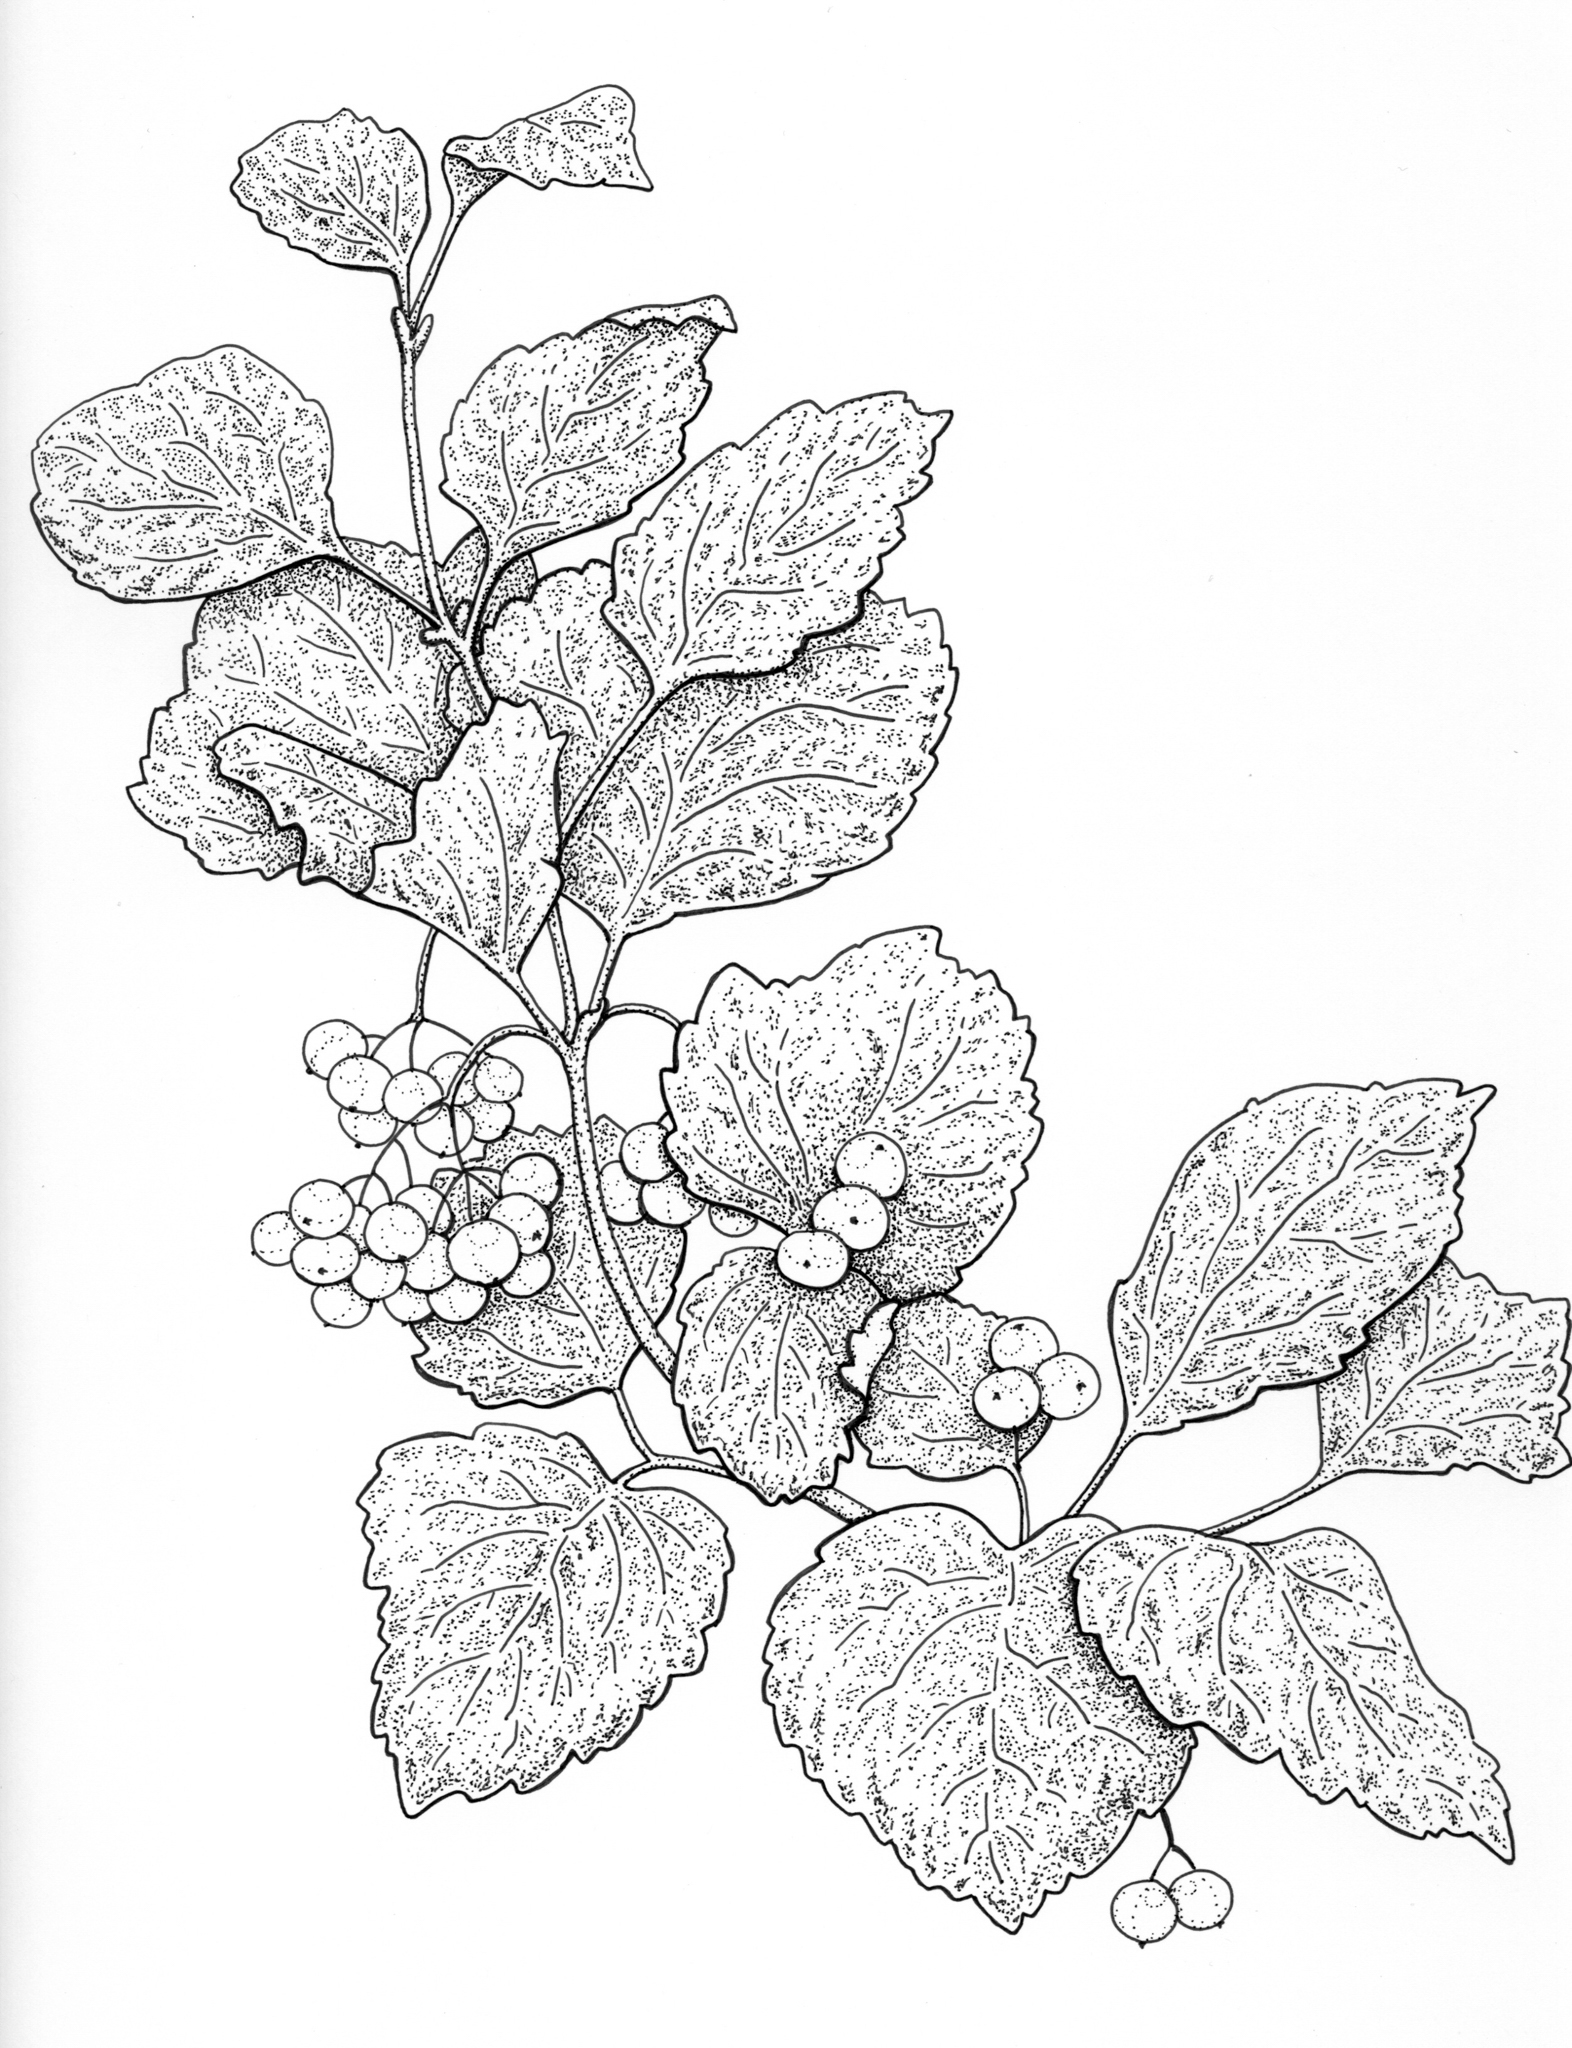 High bush cranberry drawing, high-bush cranberry, edible berries, Viburnum illustration